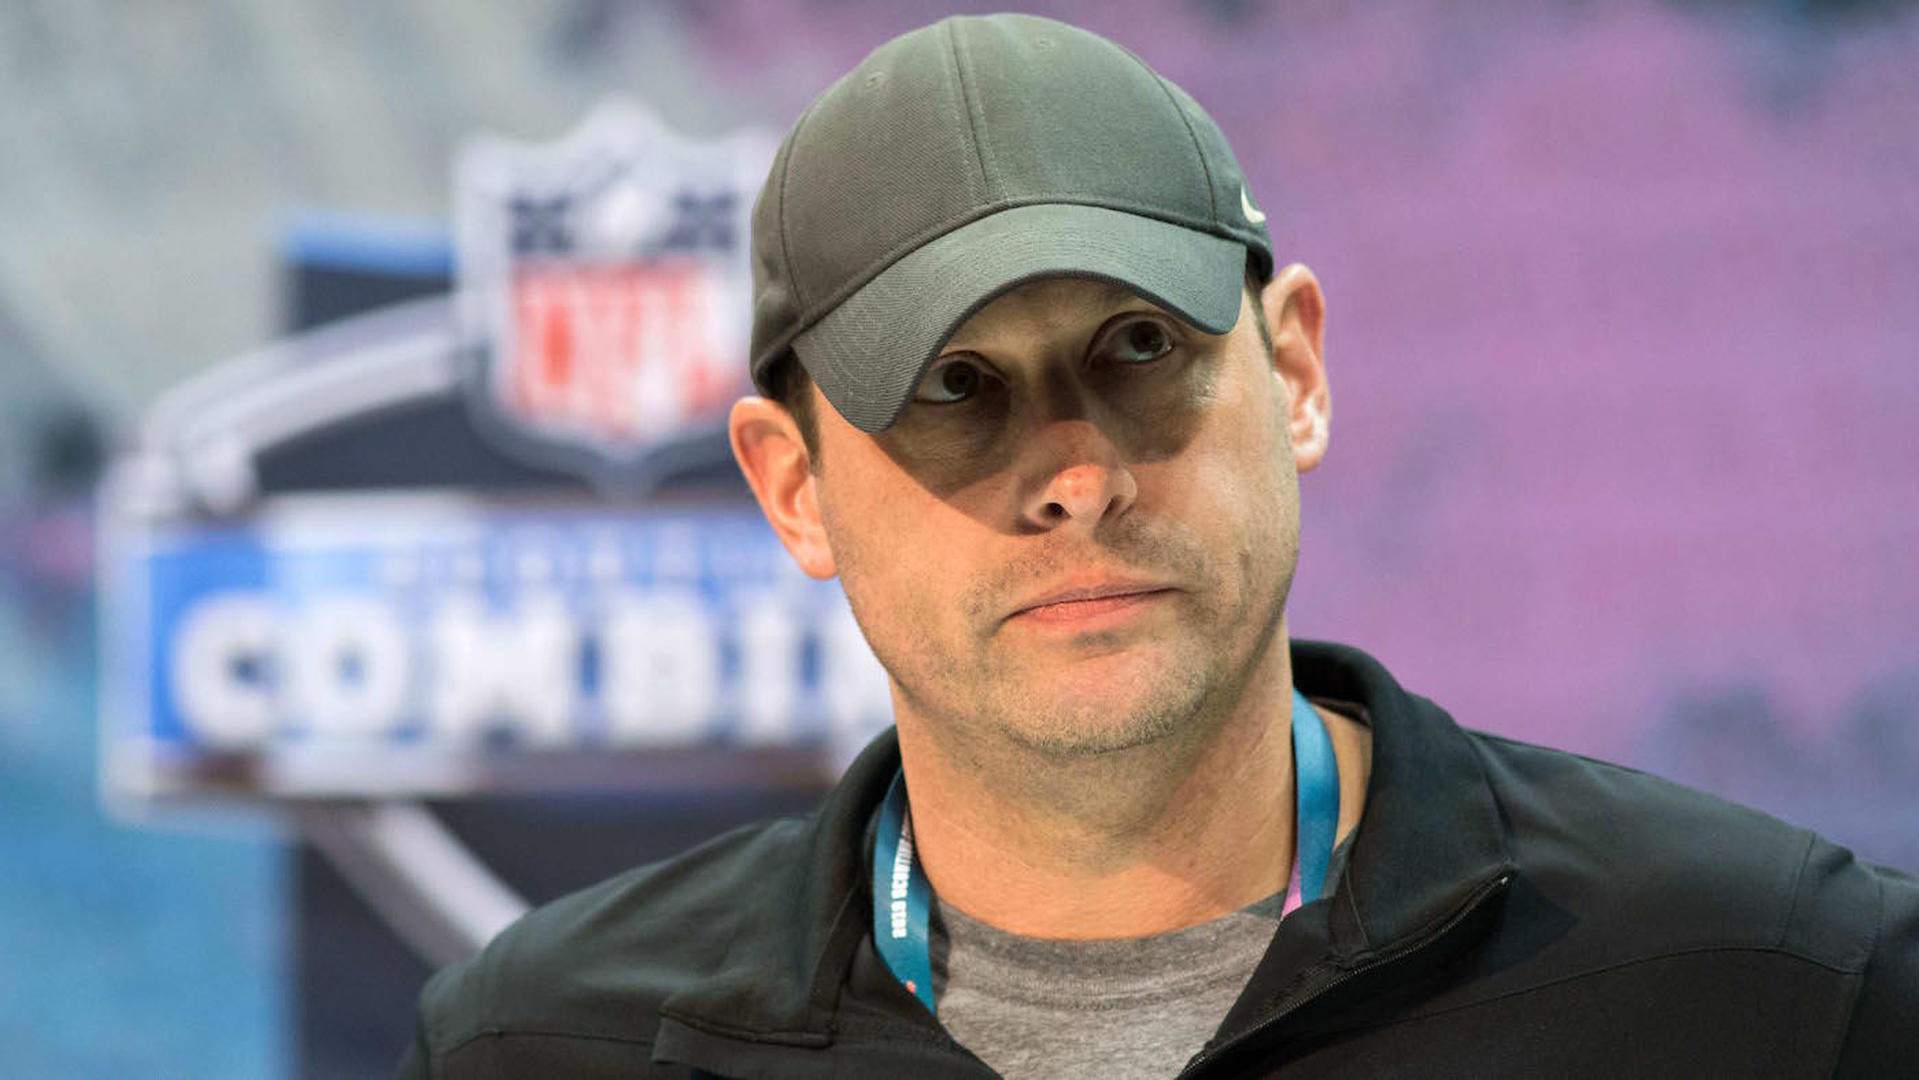 Adam Gase responds to questions about whether he will trade Le'Veon Bell before the season